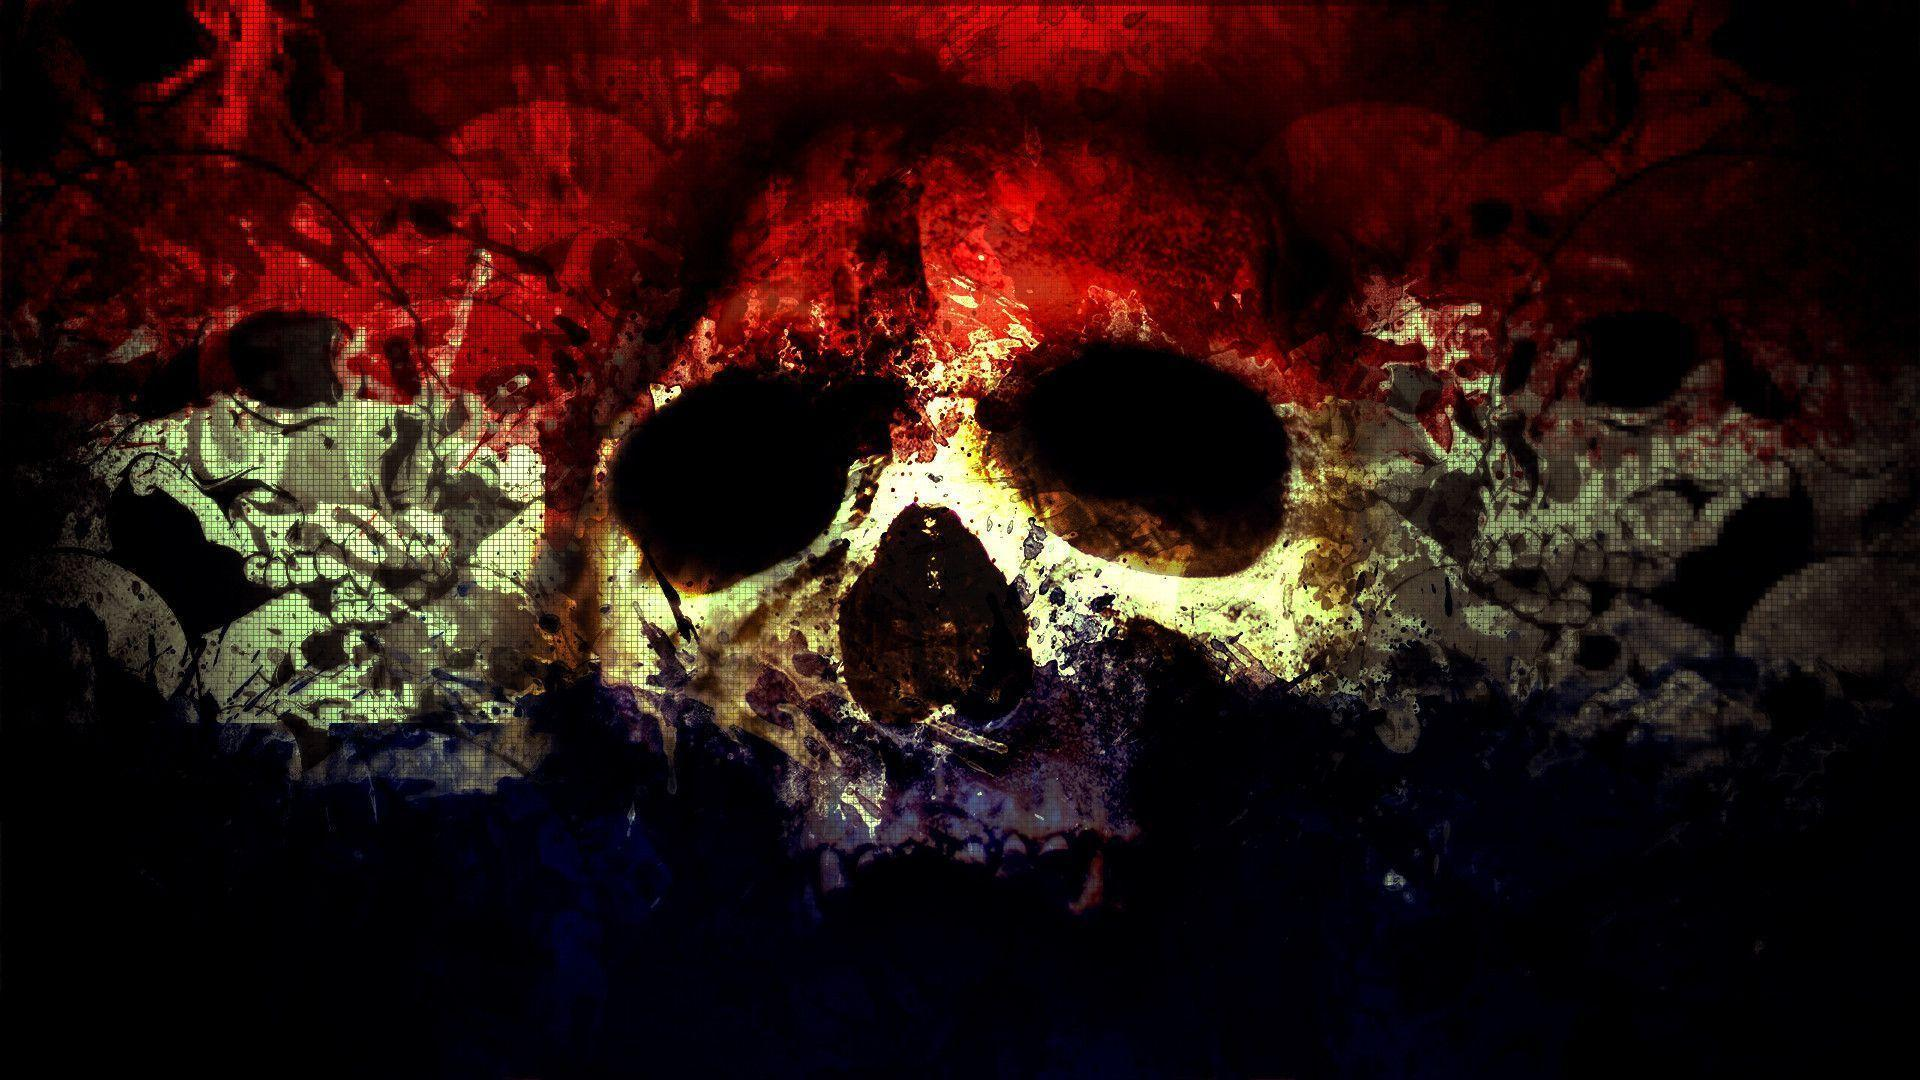 skull wallpaper for windows 7 - photo #28